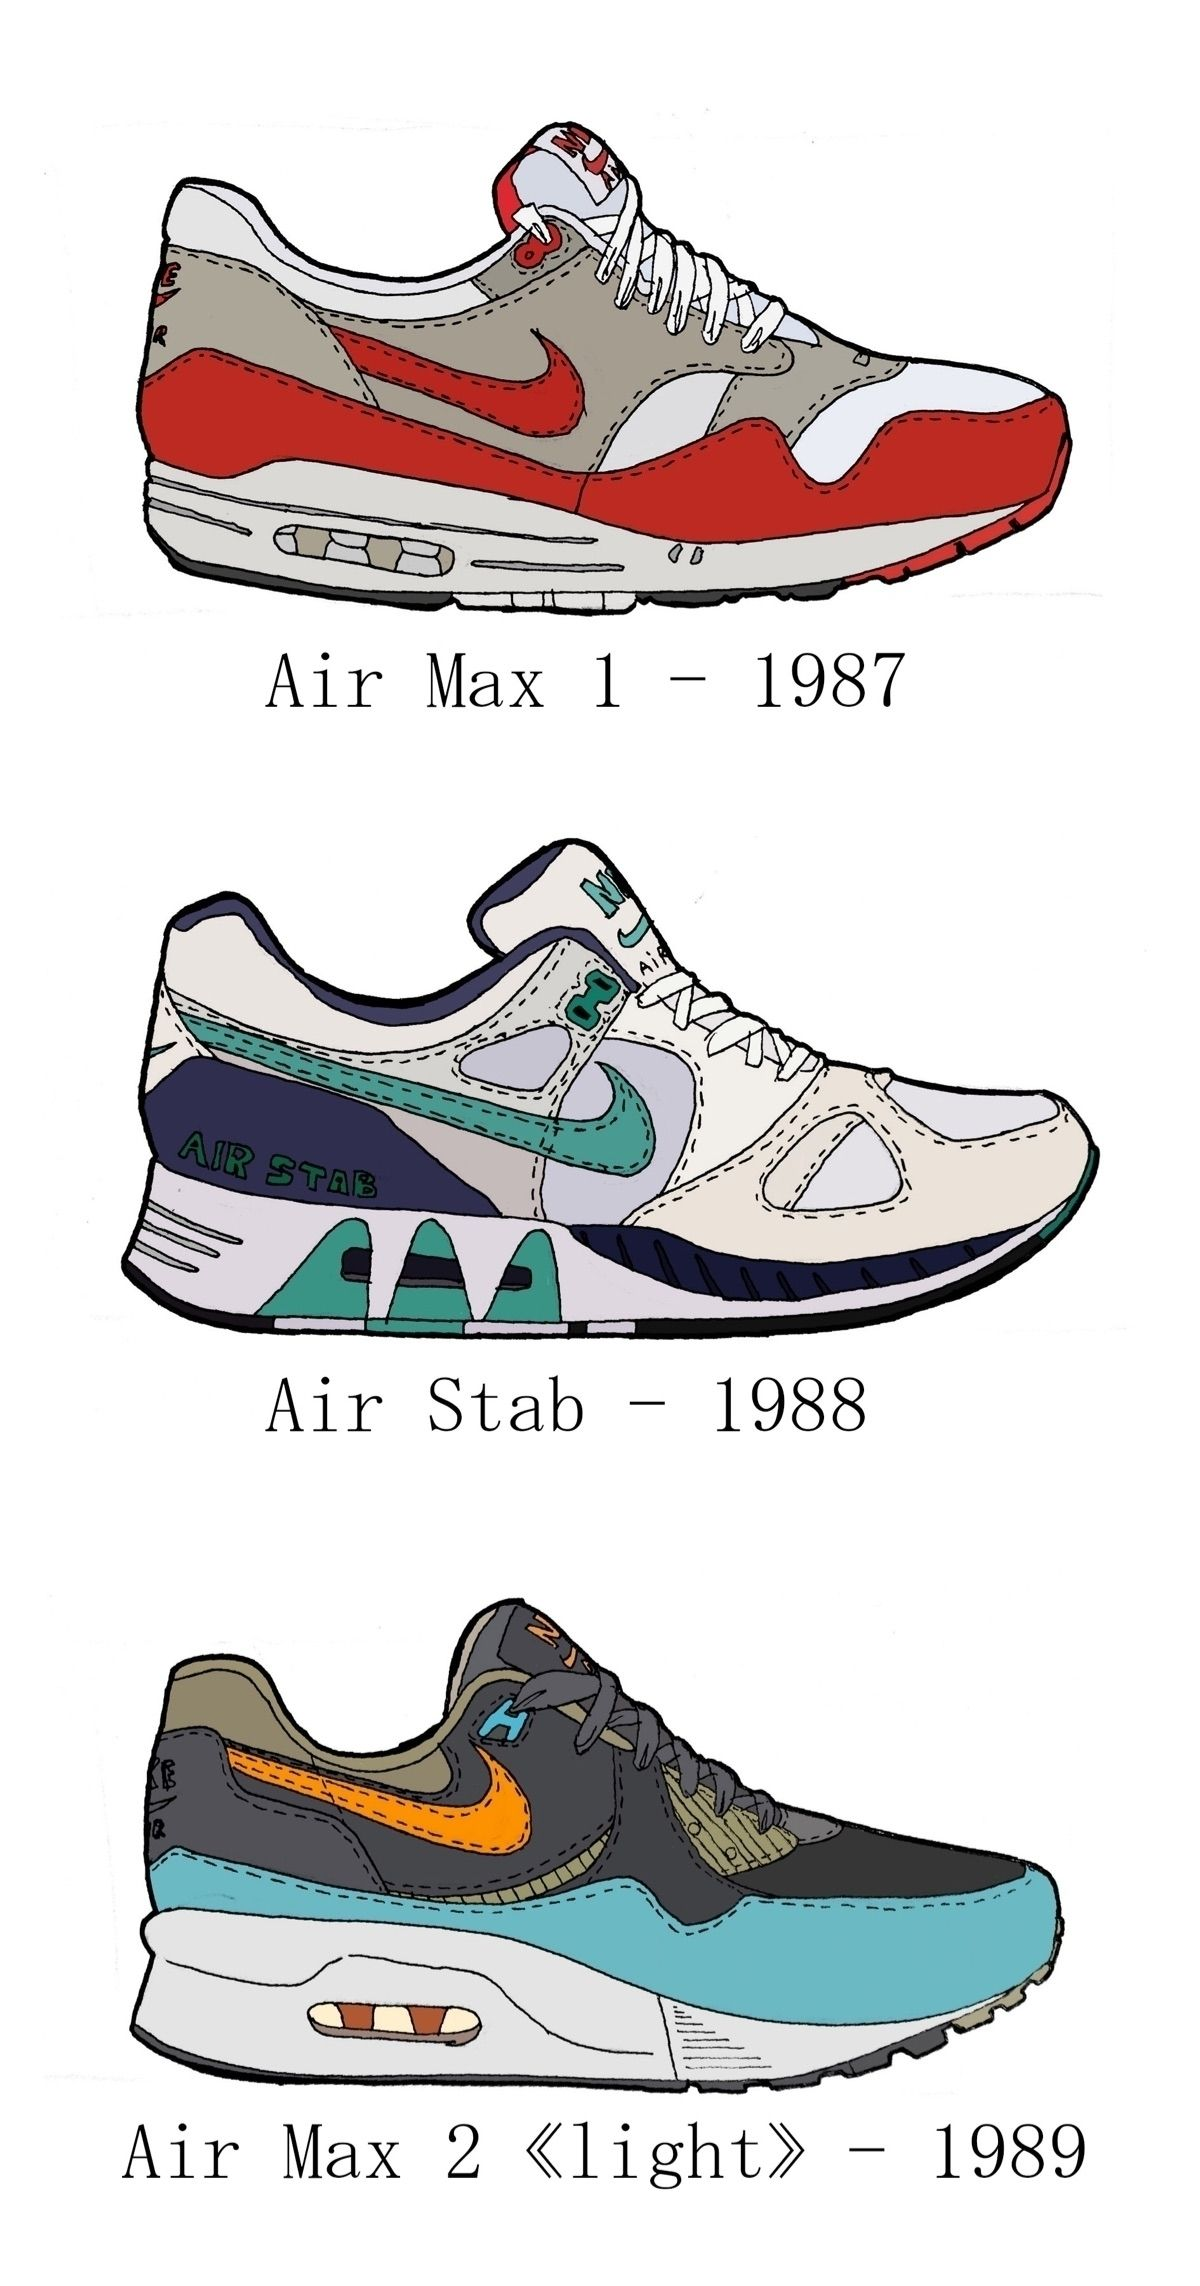 Air Max - 87 to 89 #drawing #airmax #87to89 #airmax1 #airmax2light